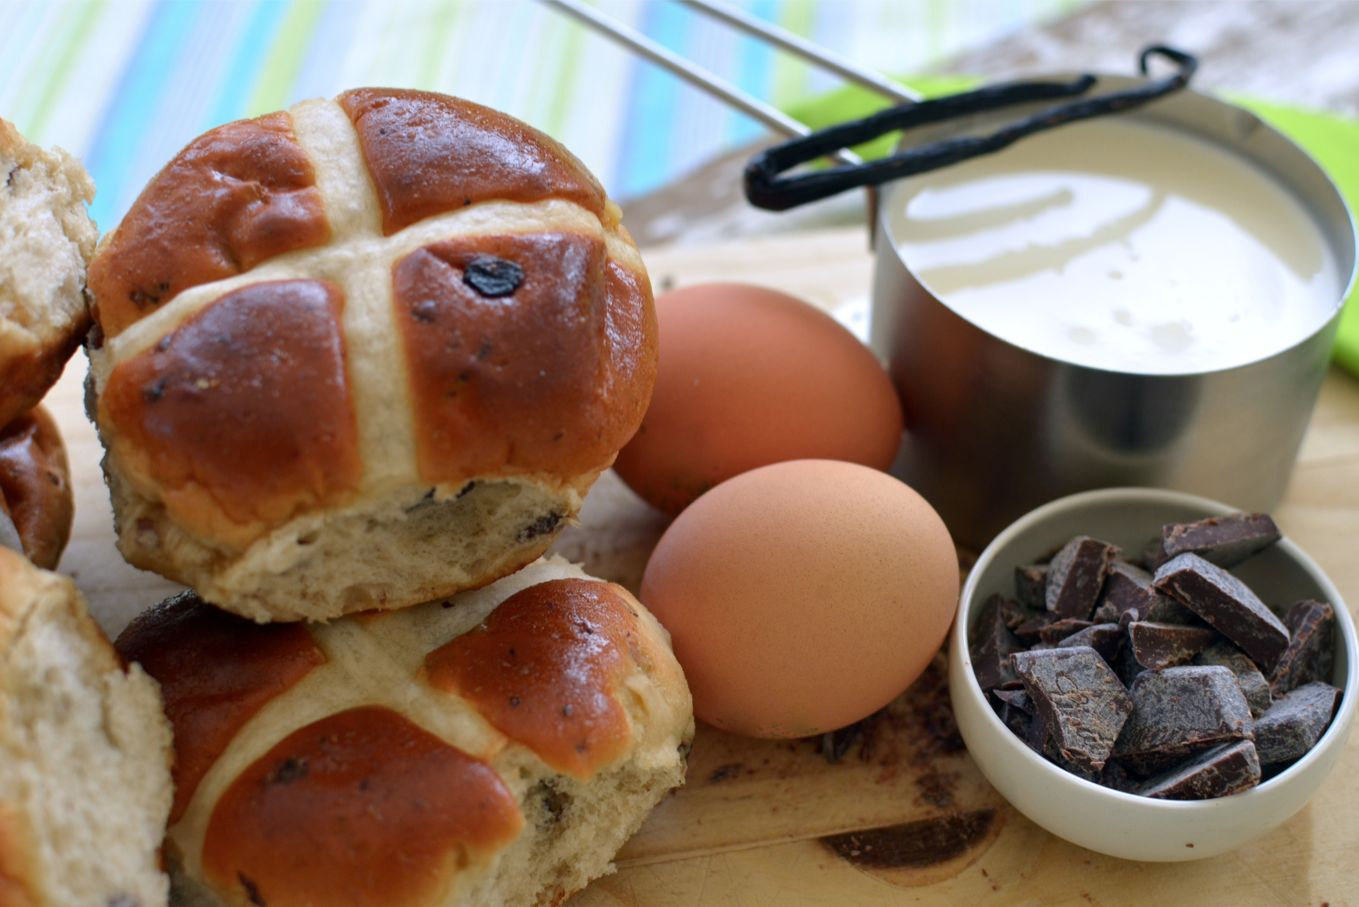 What To Do With Leftover Hot Cross Buns And Chocolate Easter Eggs